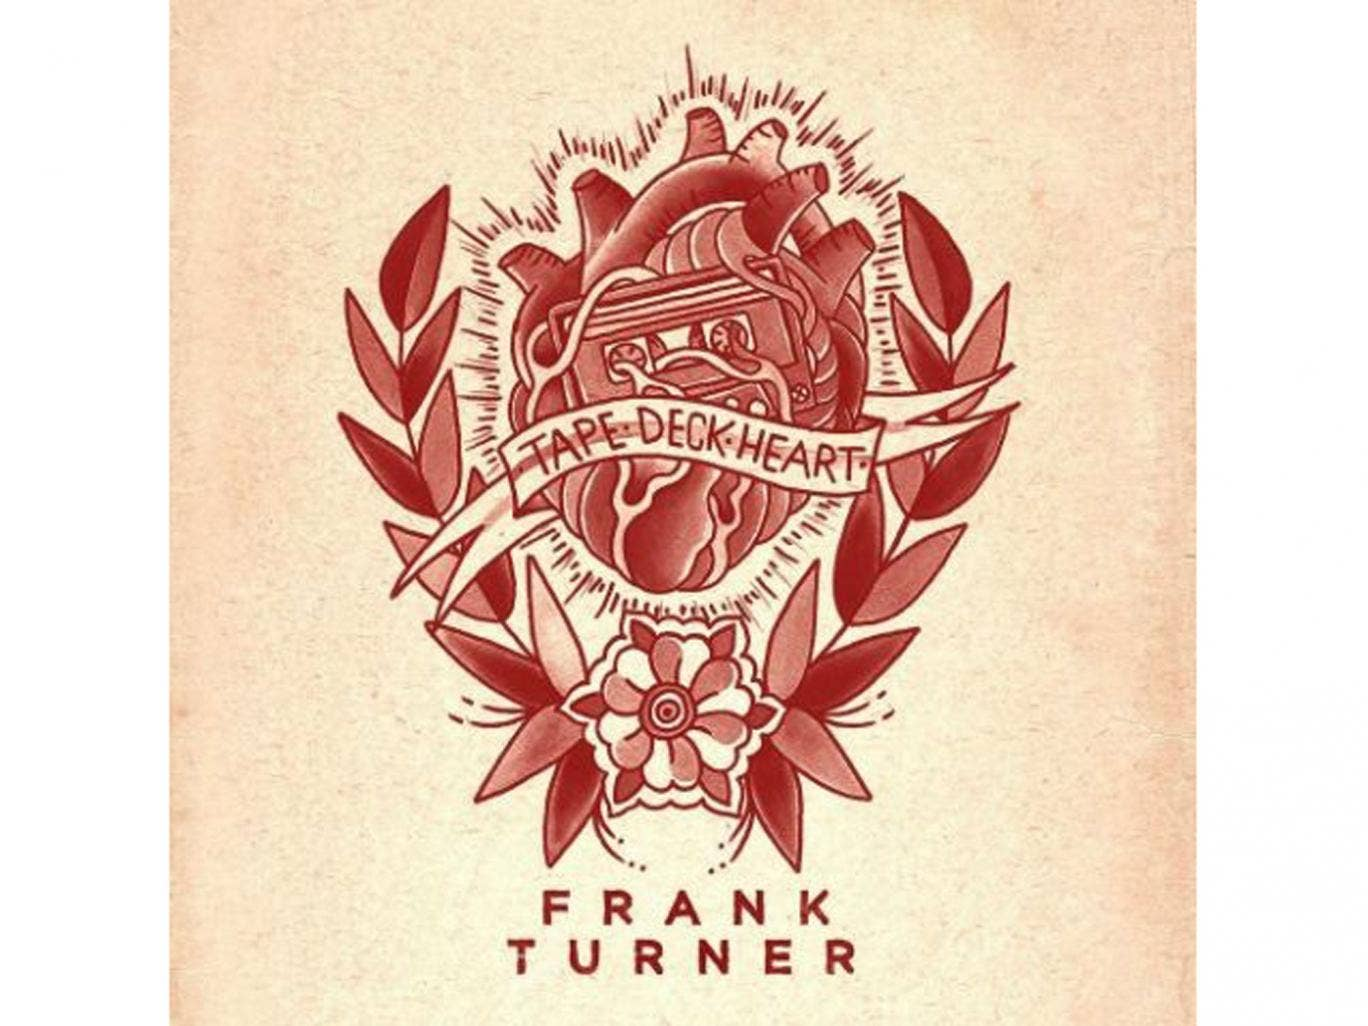 Frank Turner, Tape Deck Heart (Polydor)